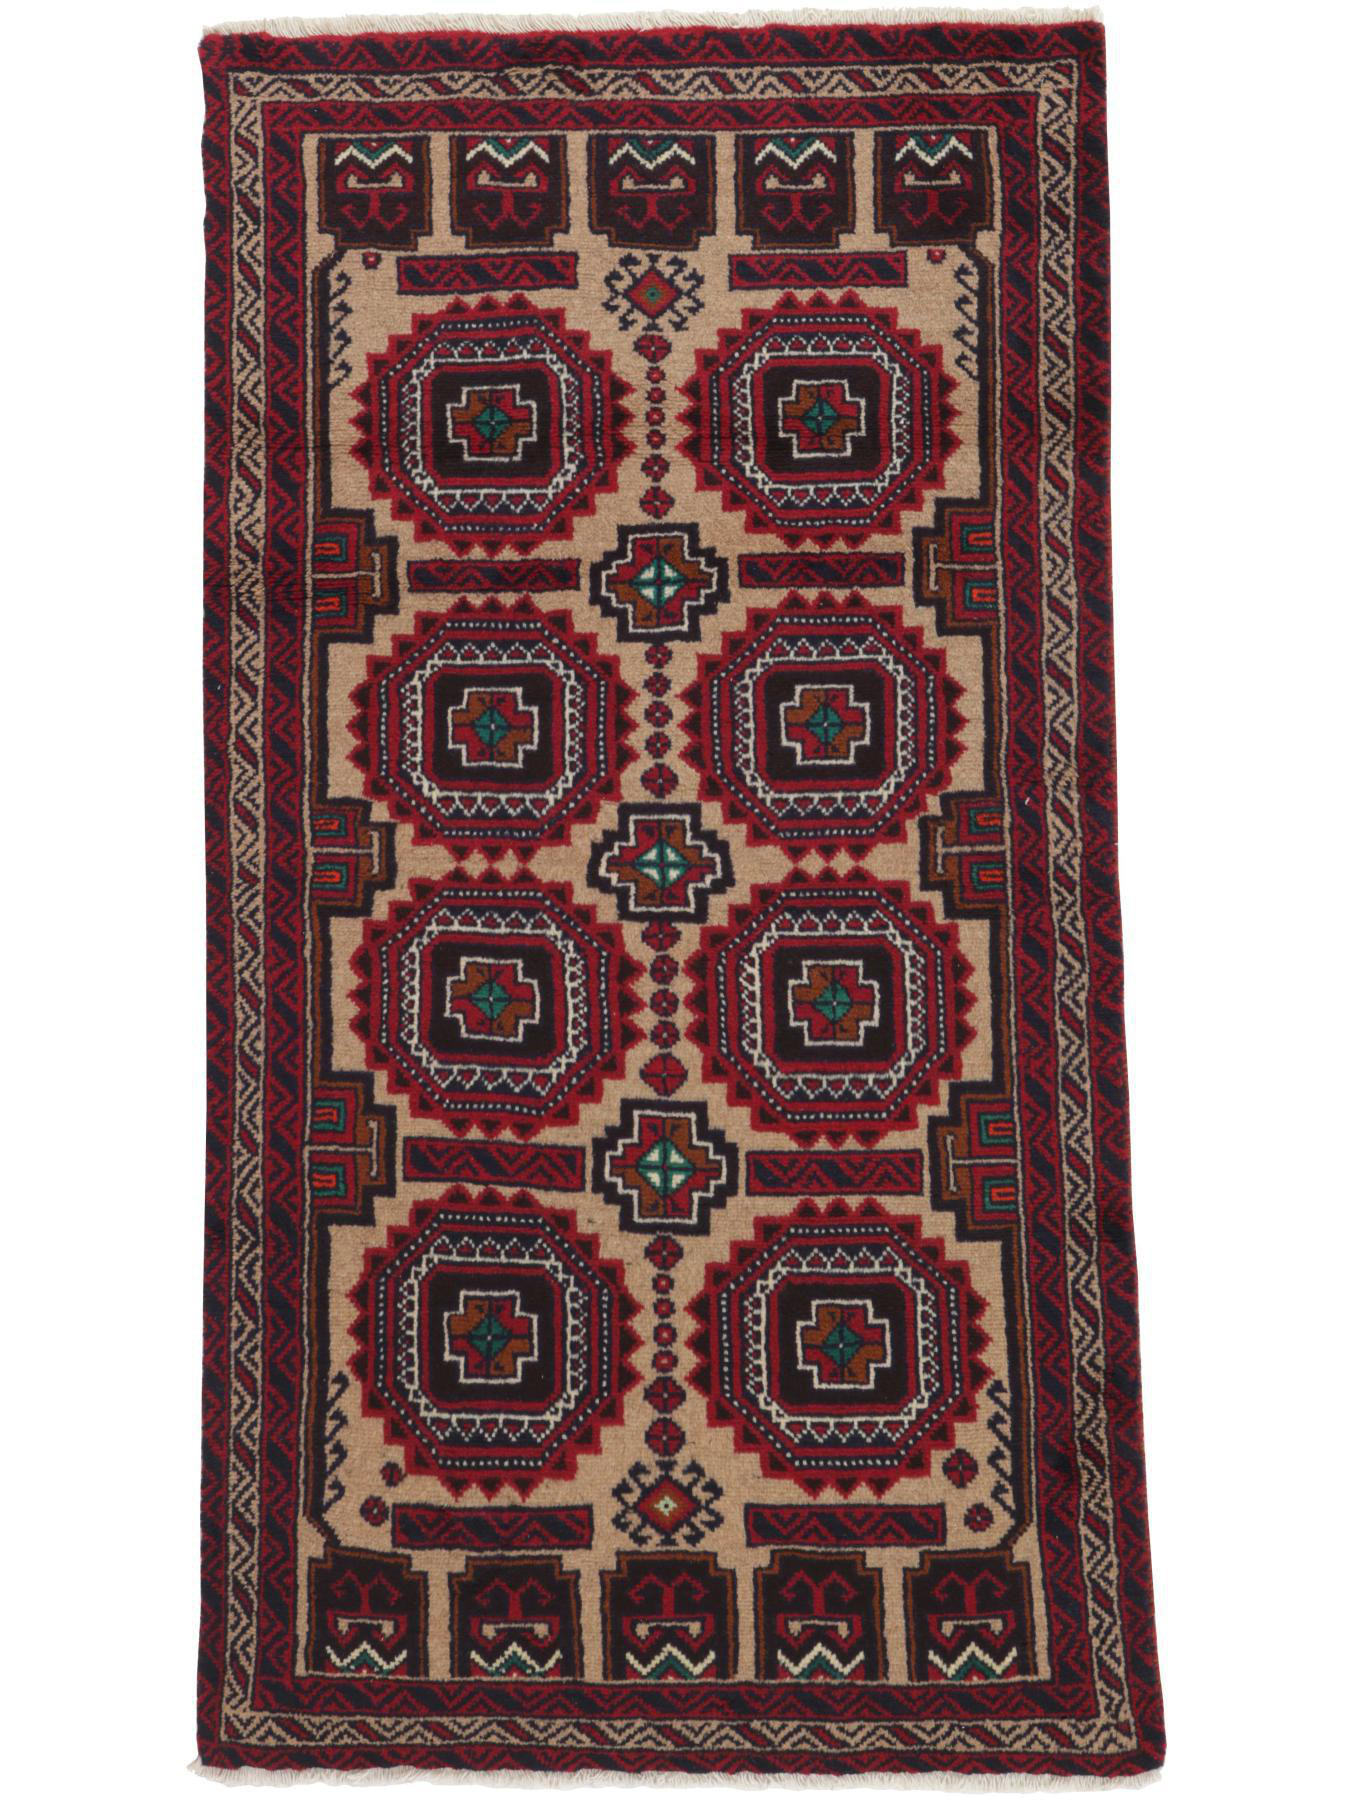 Tapis persans - Beloutch